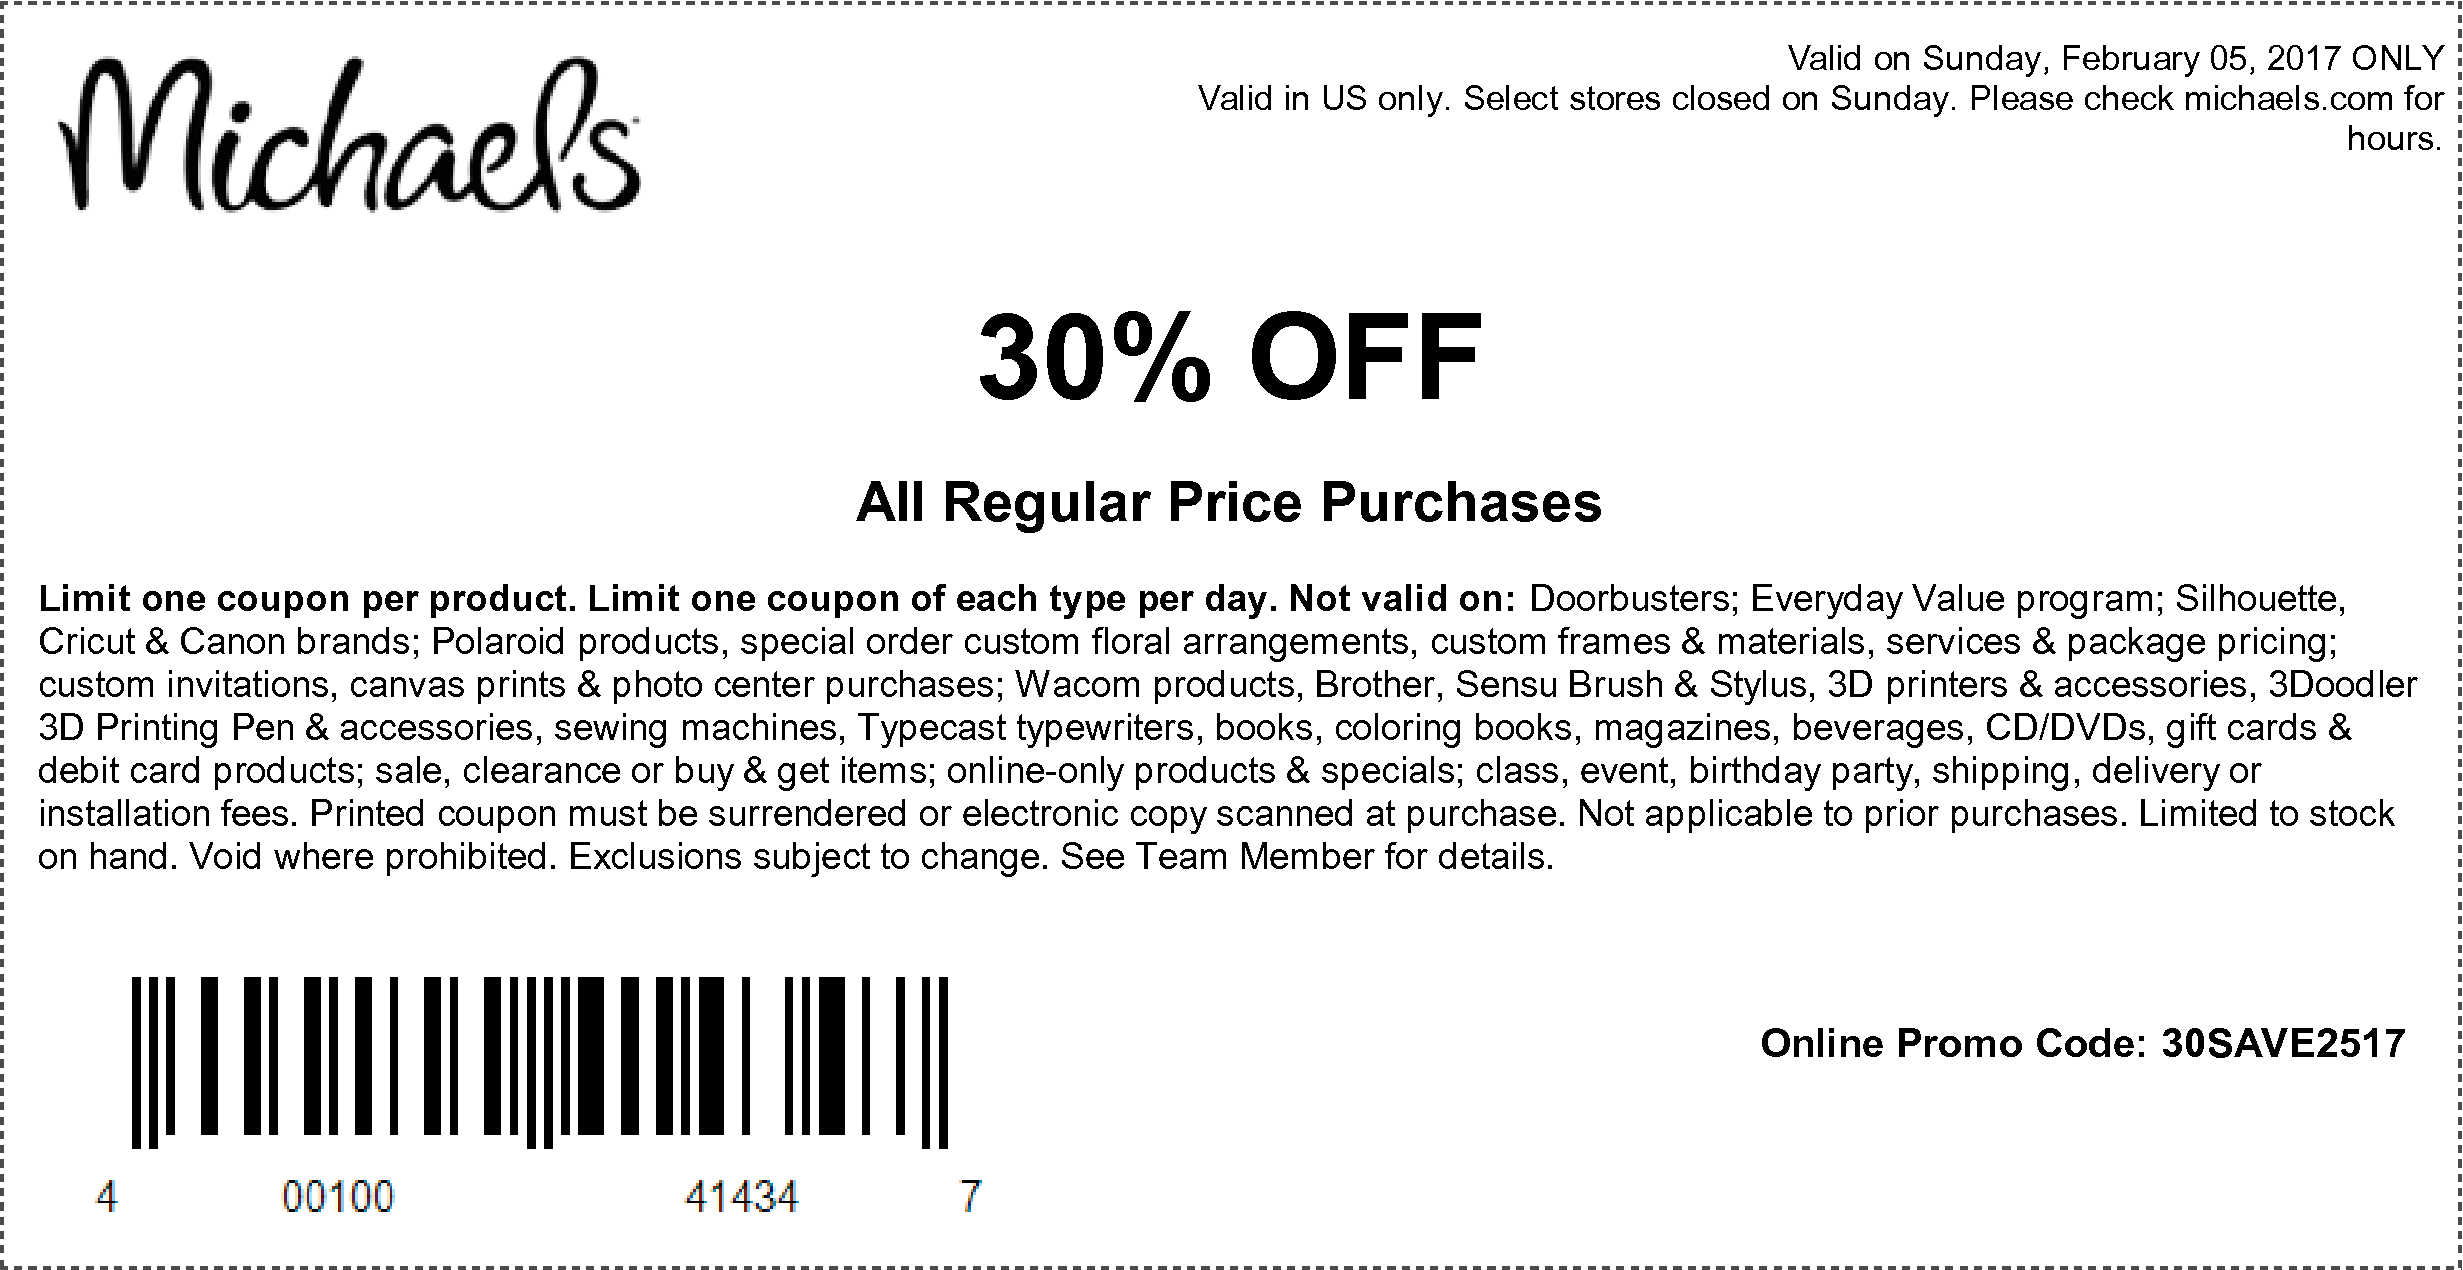 here are the coupons starting 020517